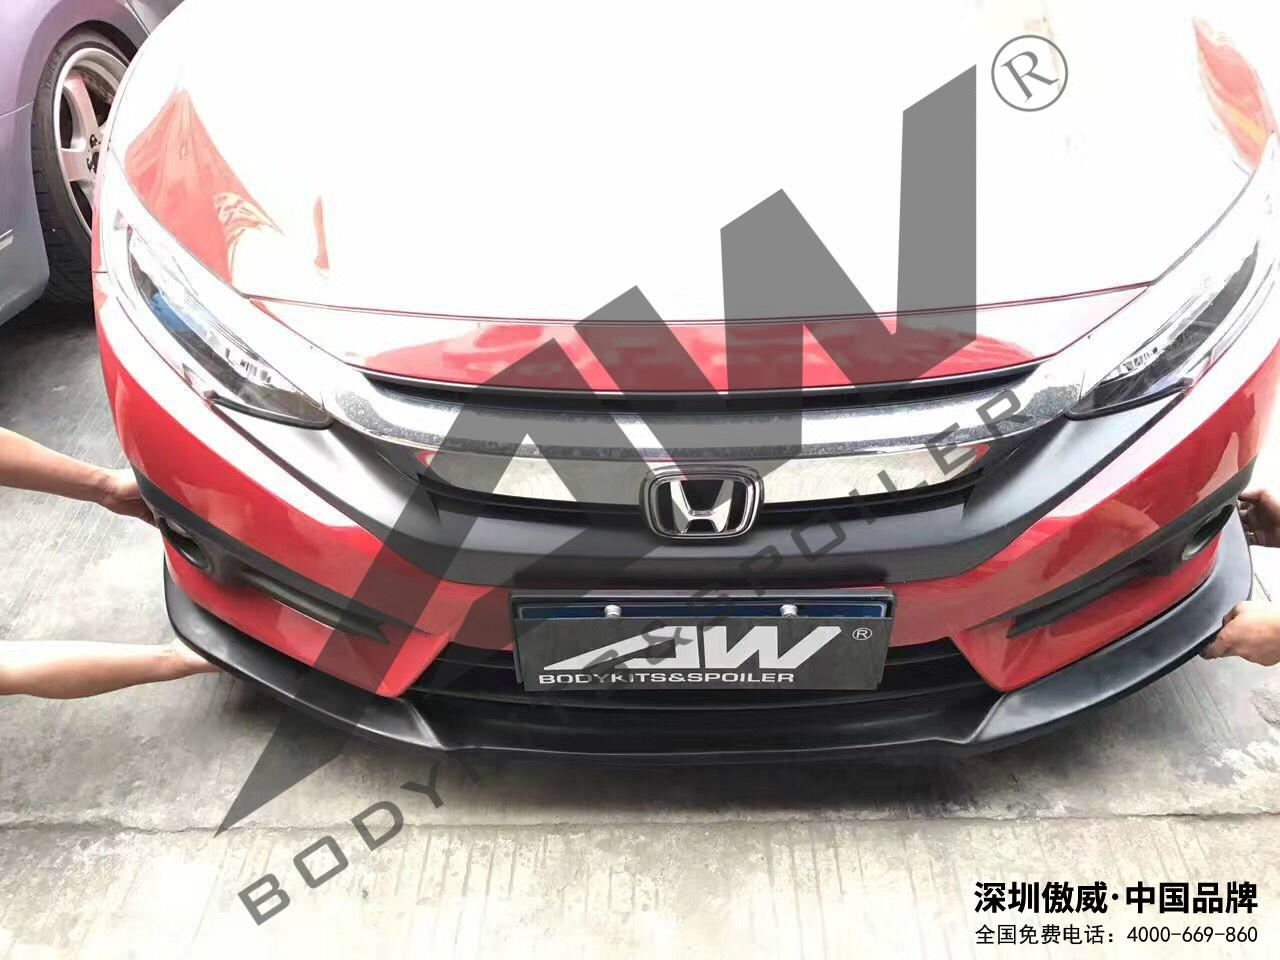 The ten generation Civic fro 5